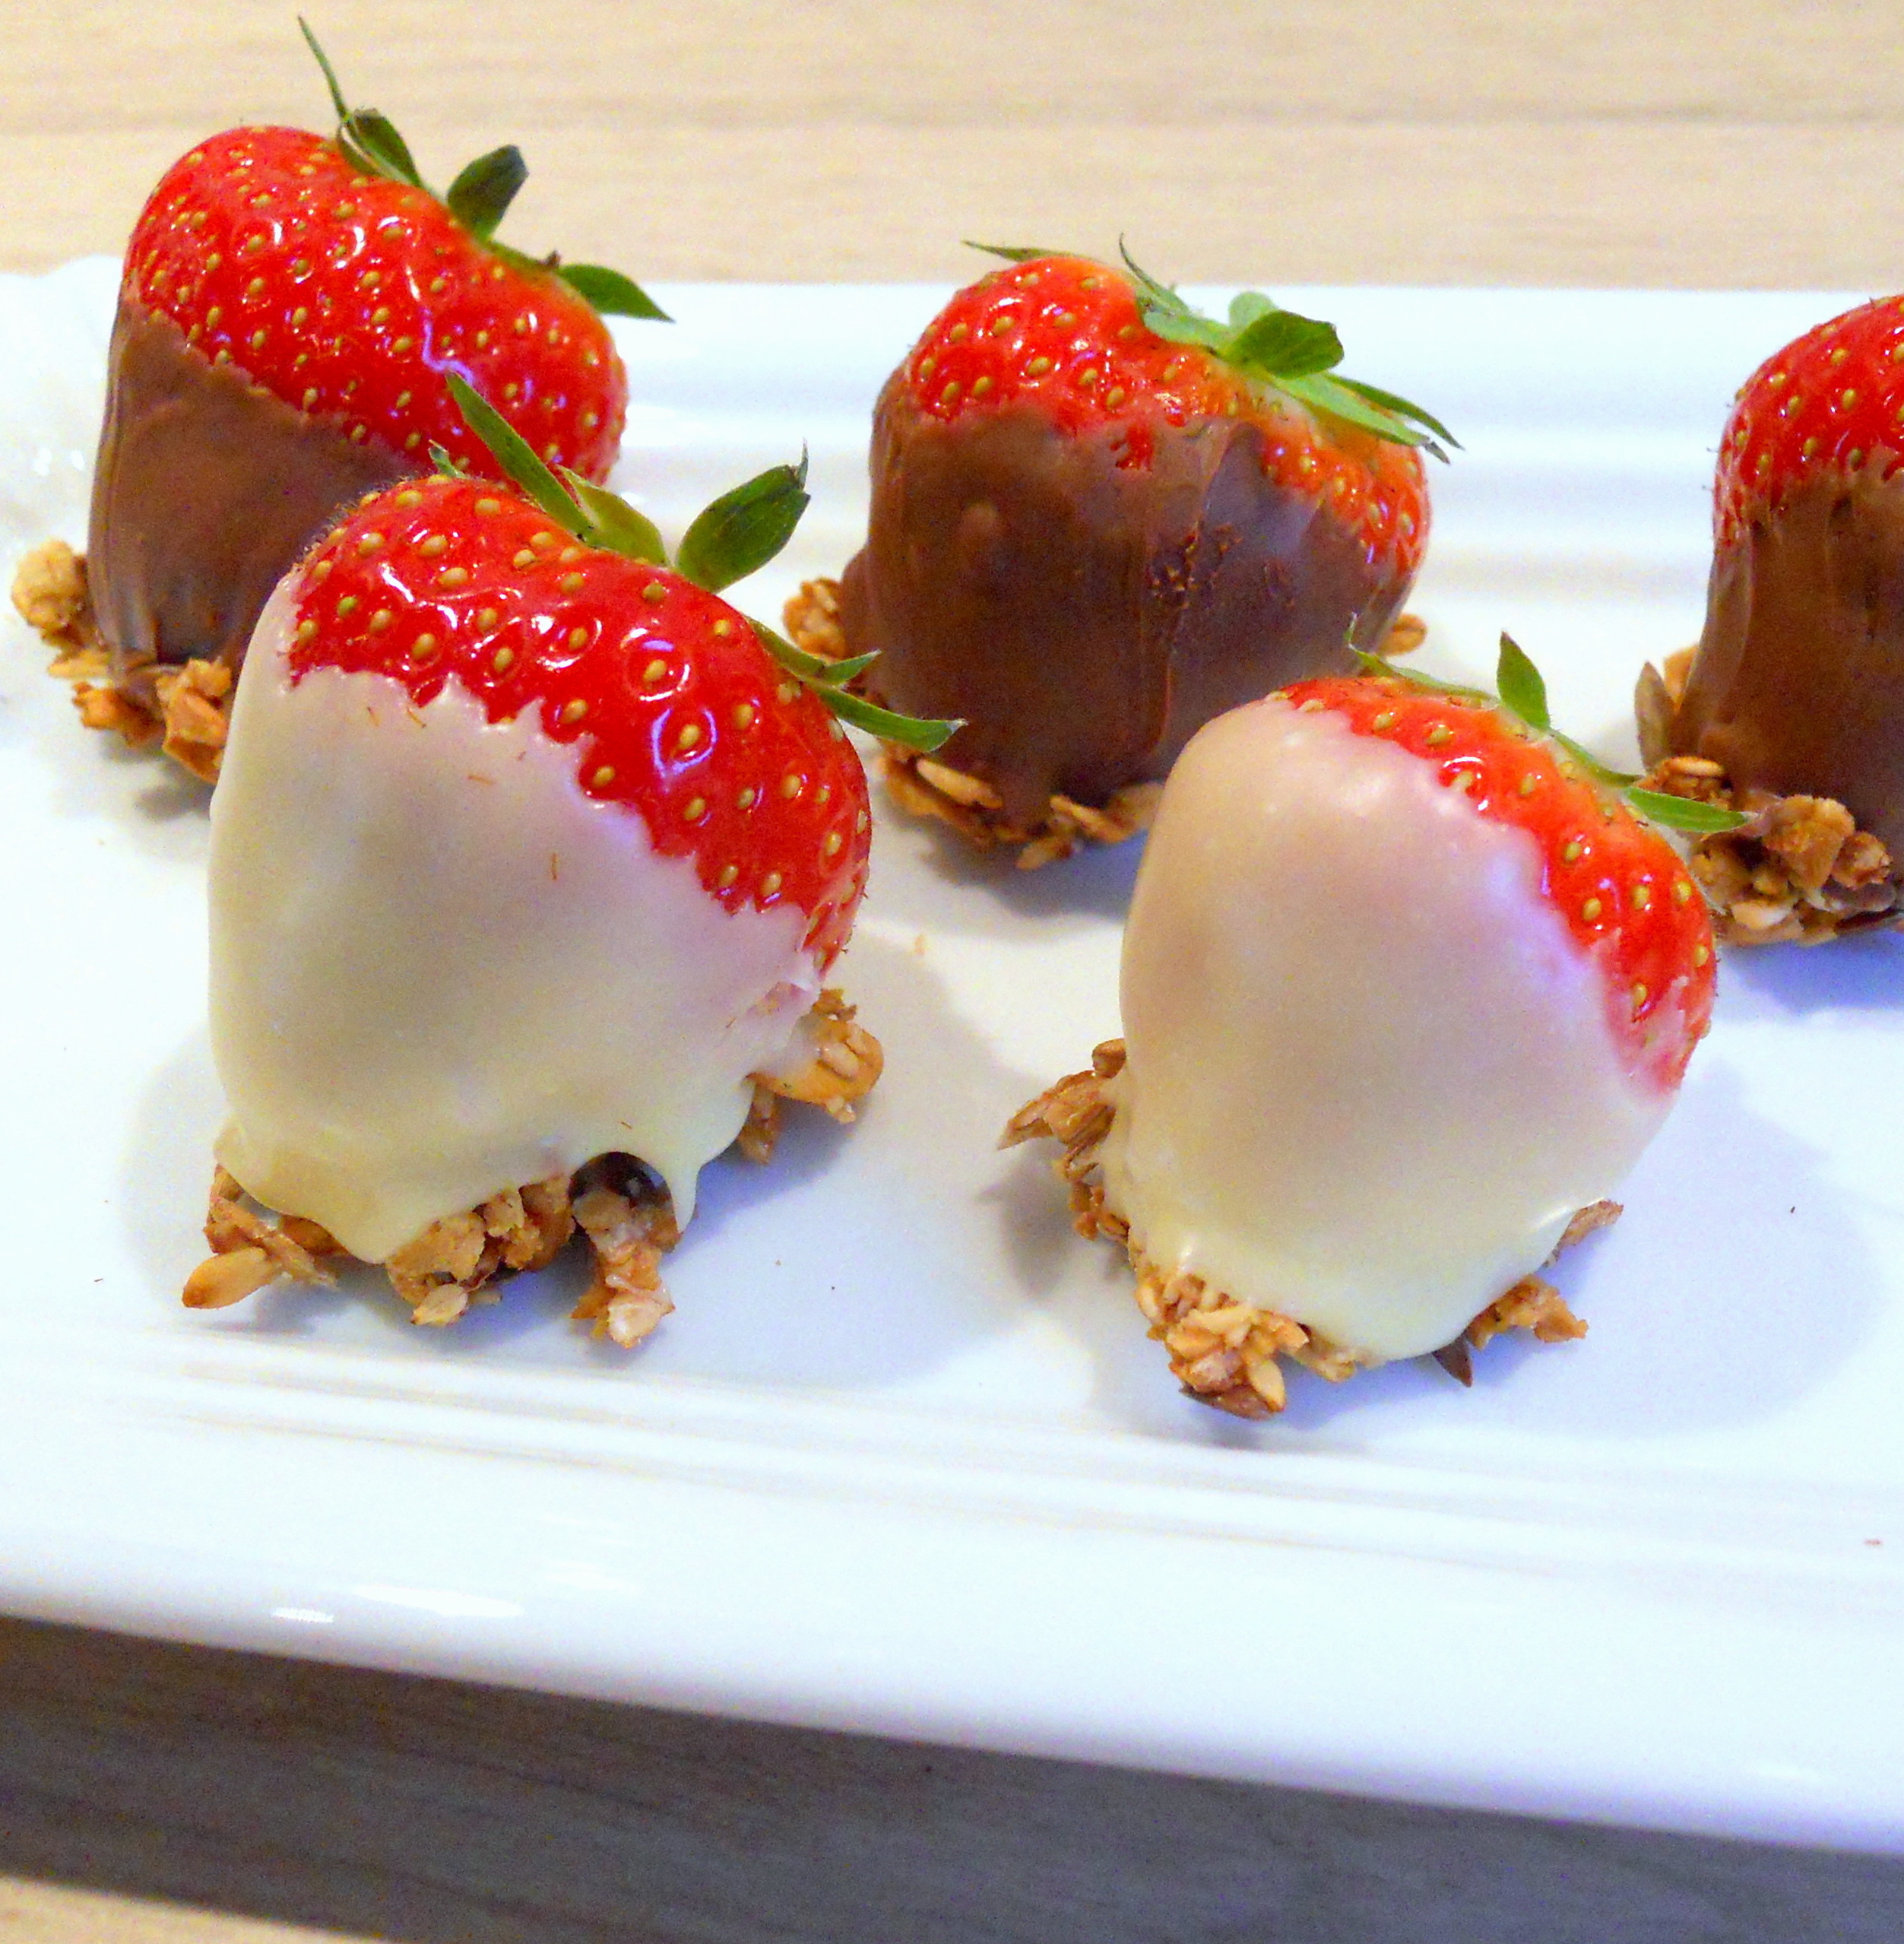 Strawberries with chocolate and delicious XAVIES' Granola